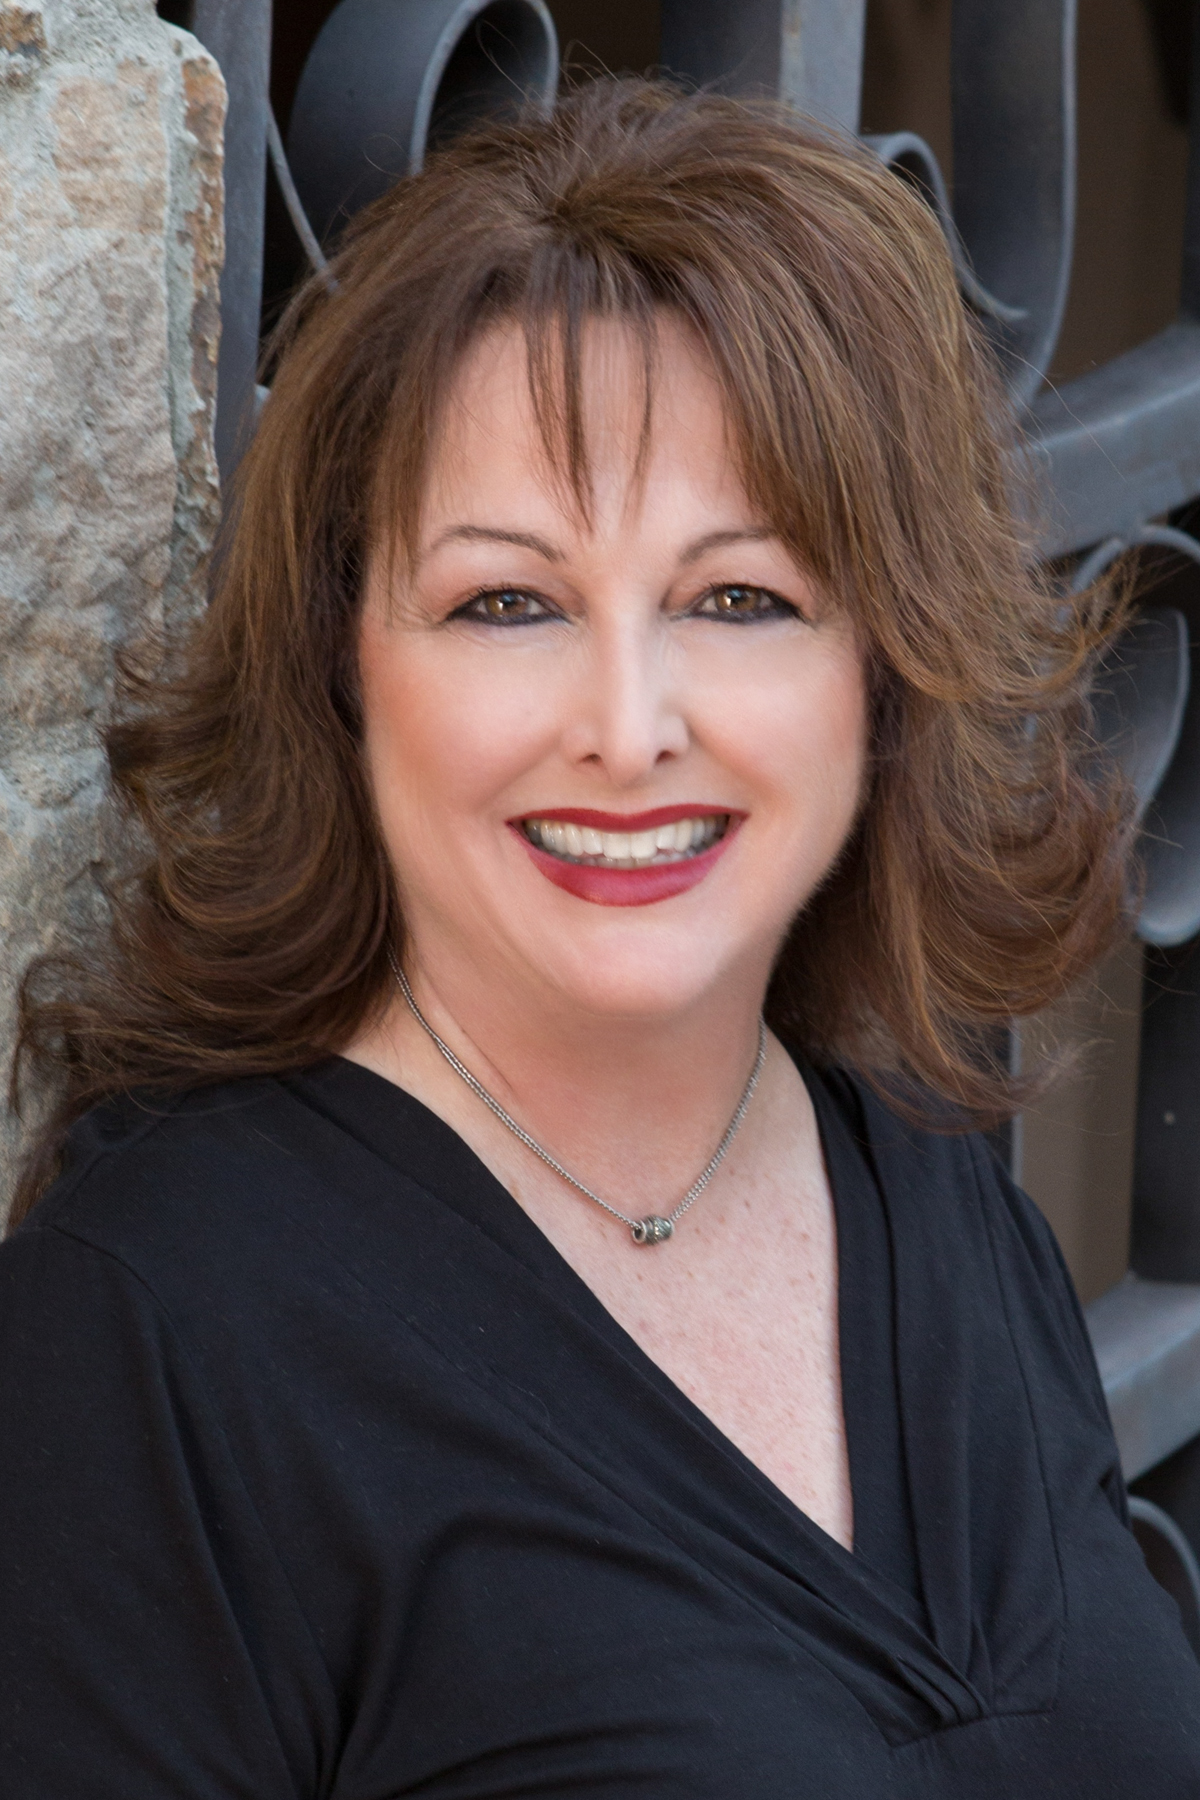 Martha  Martha  is a licensed real estate agent in Green Valley AZ